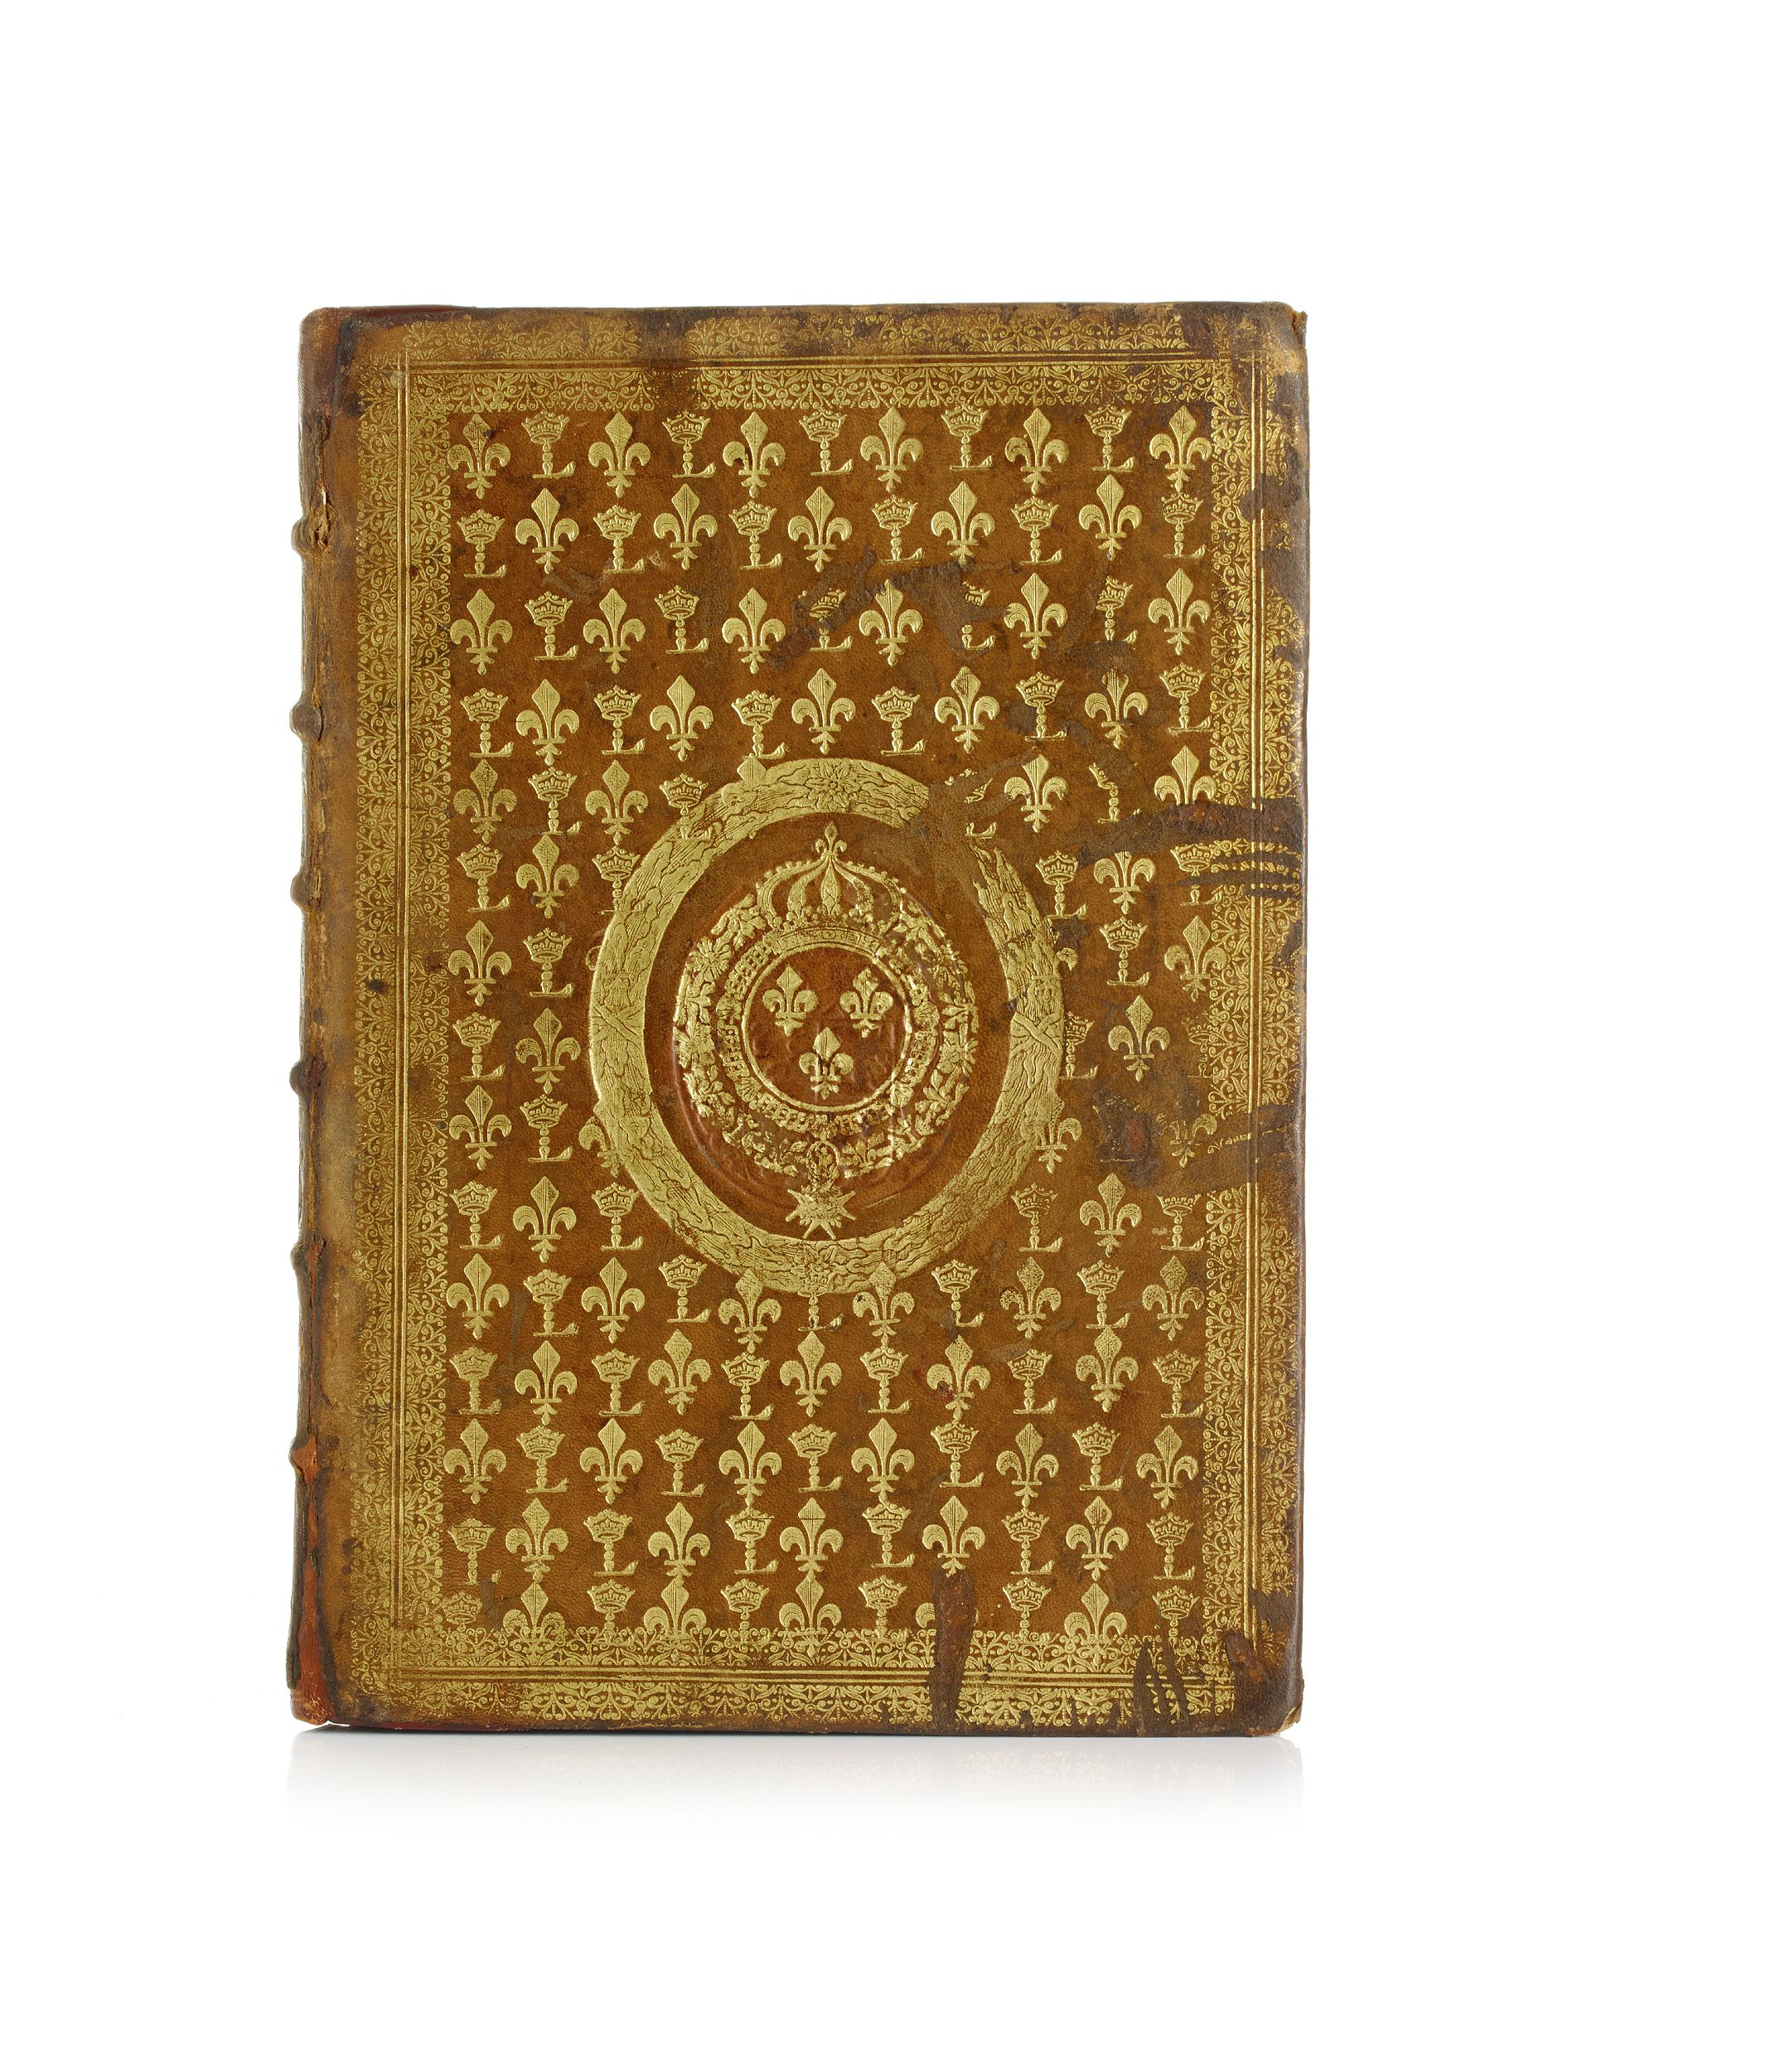 Royal binding for Louis XIII of France